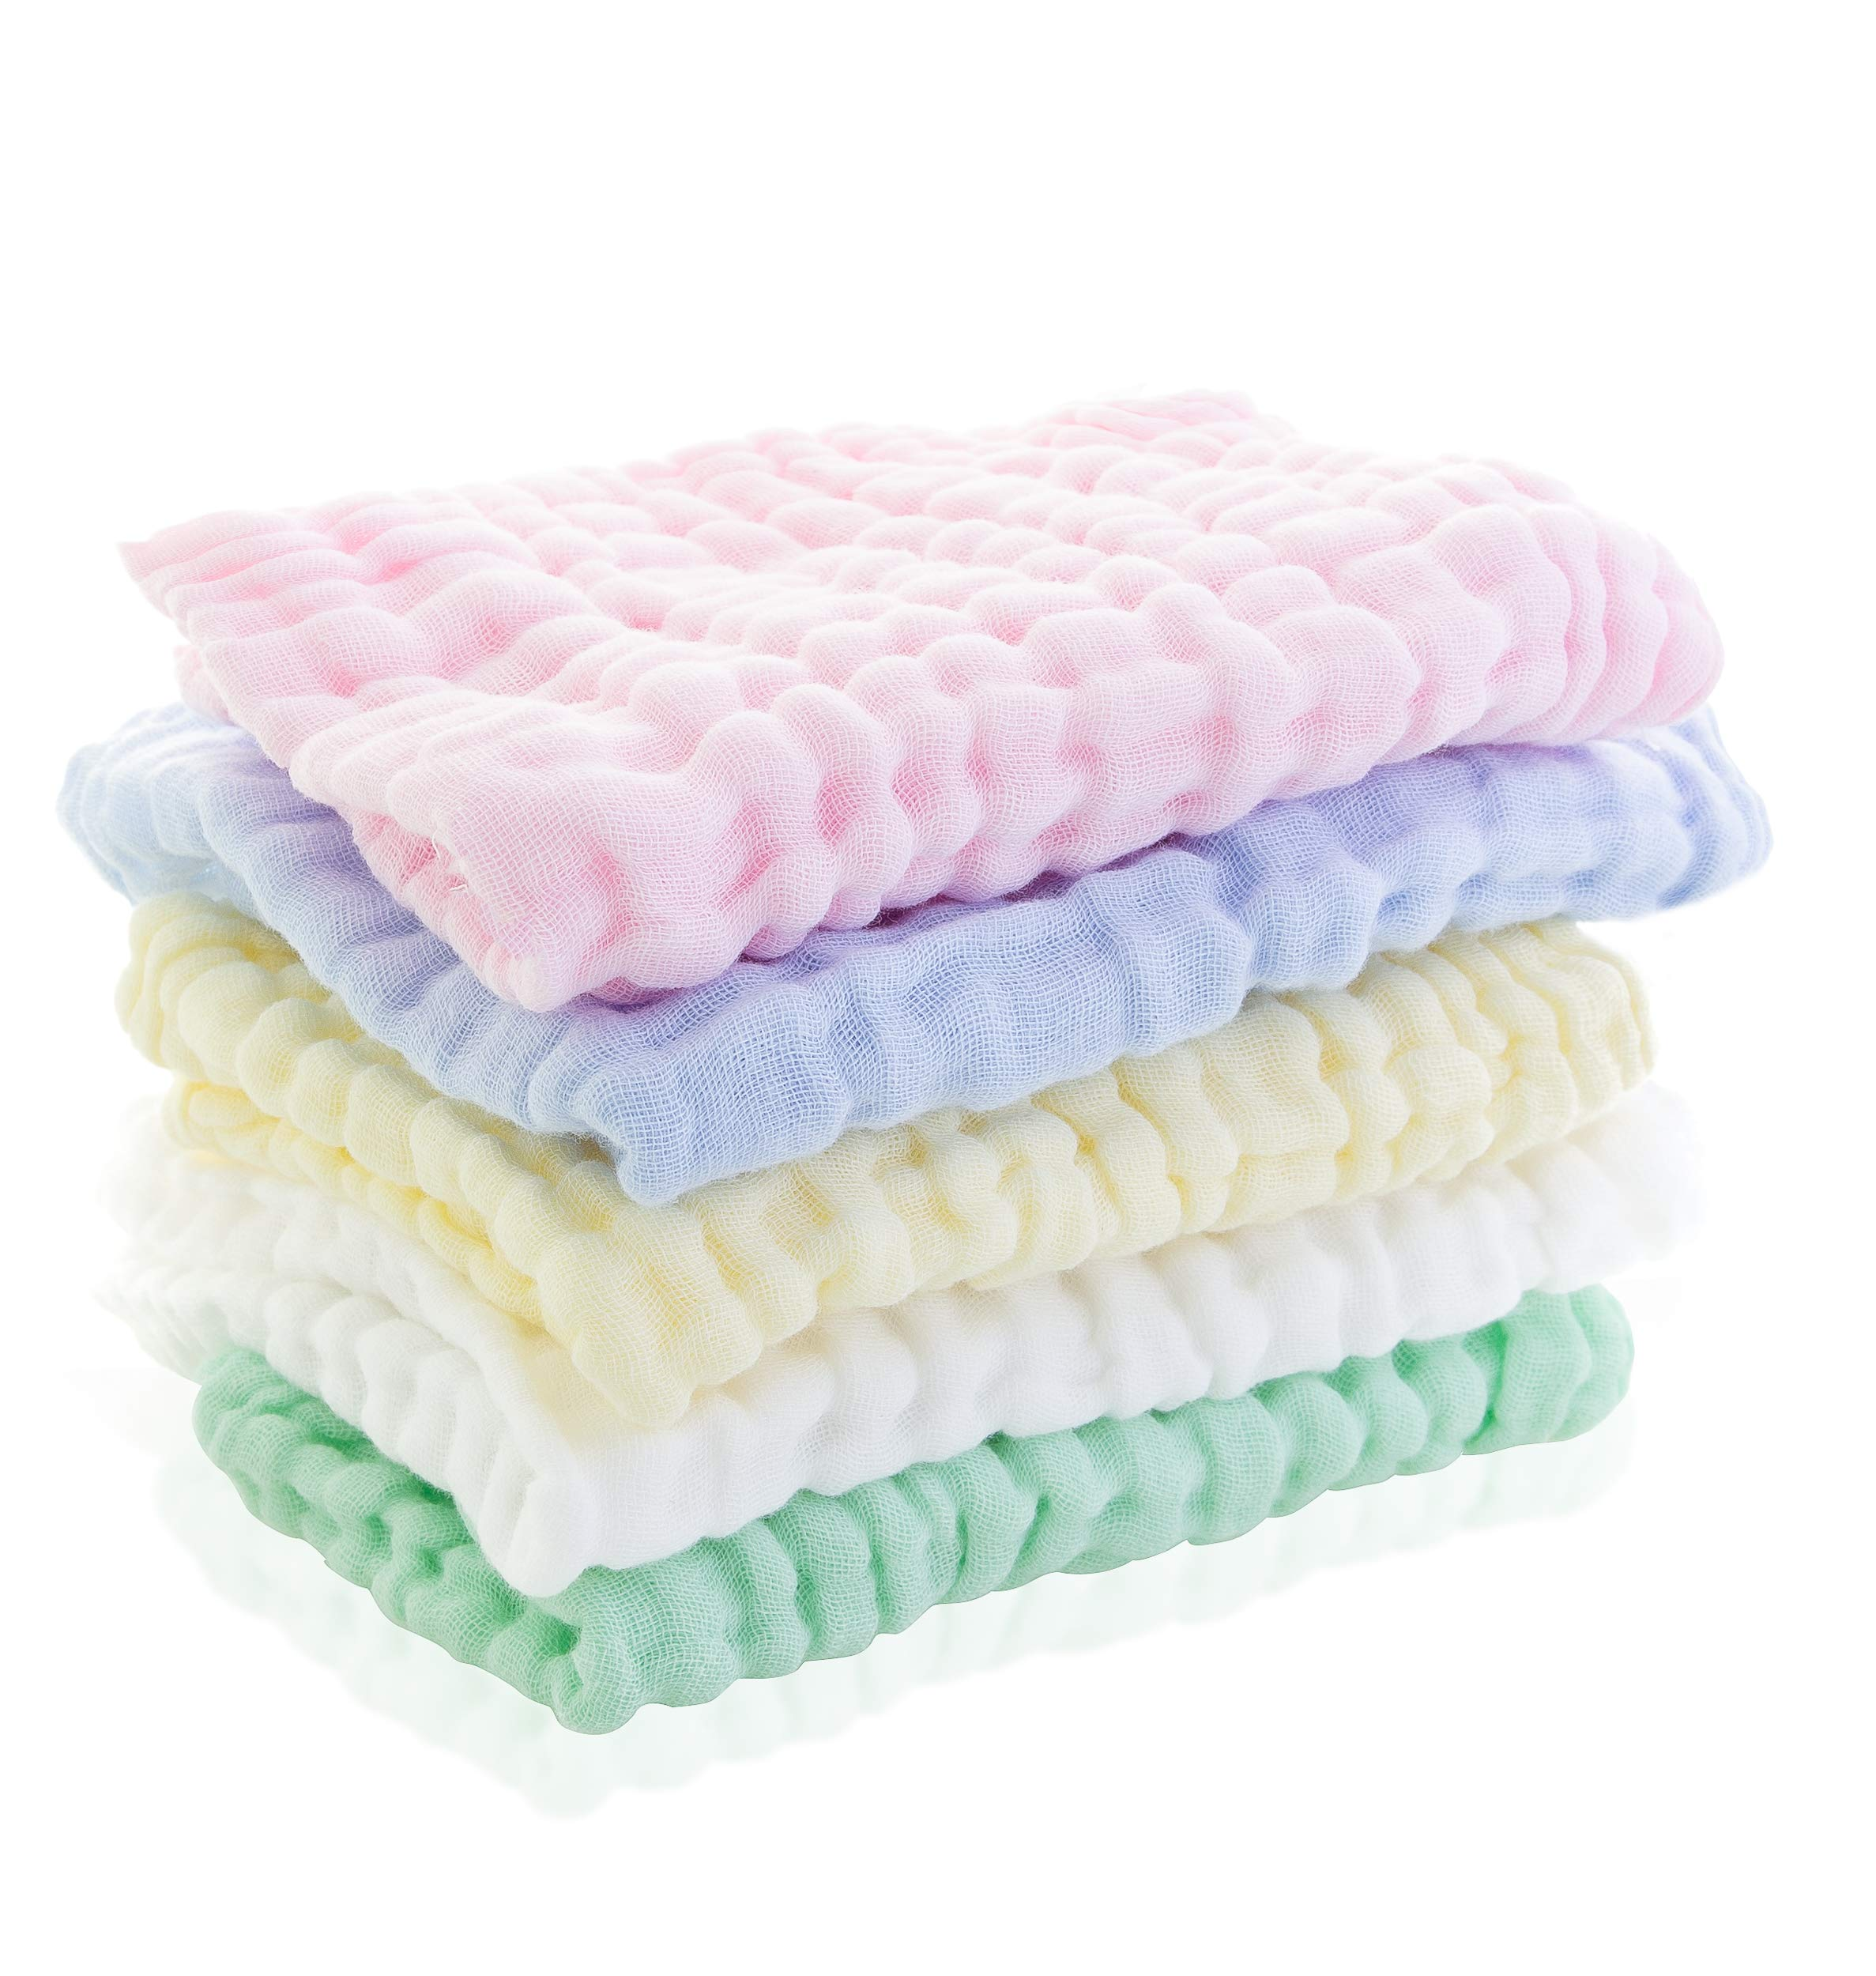 Little Blessings Burpees | 5 Pack Premium Muslin Burp Cloths | 100% Organic Cotton | 6 Layers for Extra Absorbent Strength | Multipurpose: Wipes/Washcloths/Burp Cloths | Great for Newborns |12 x 18in by Little Blessings